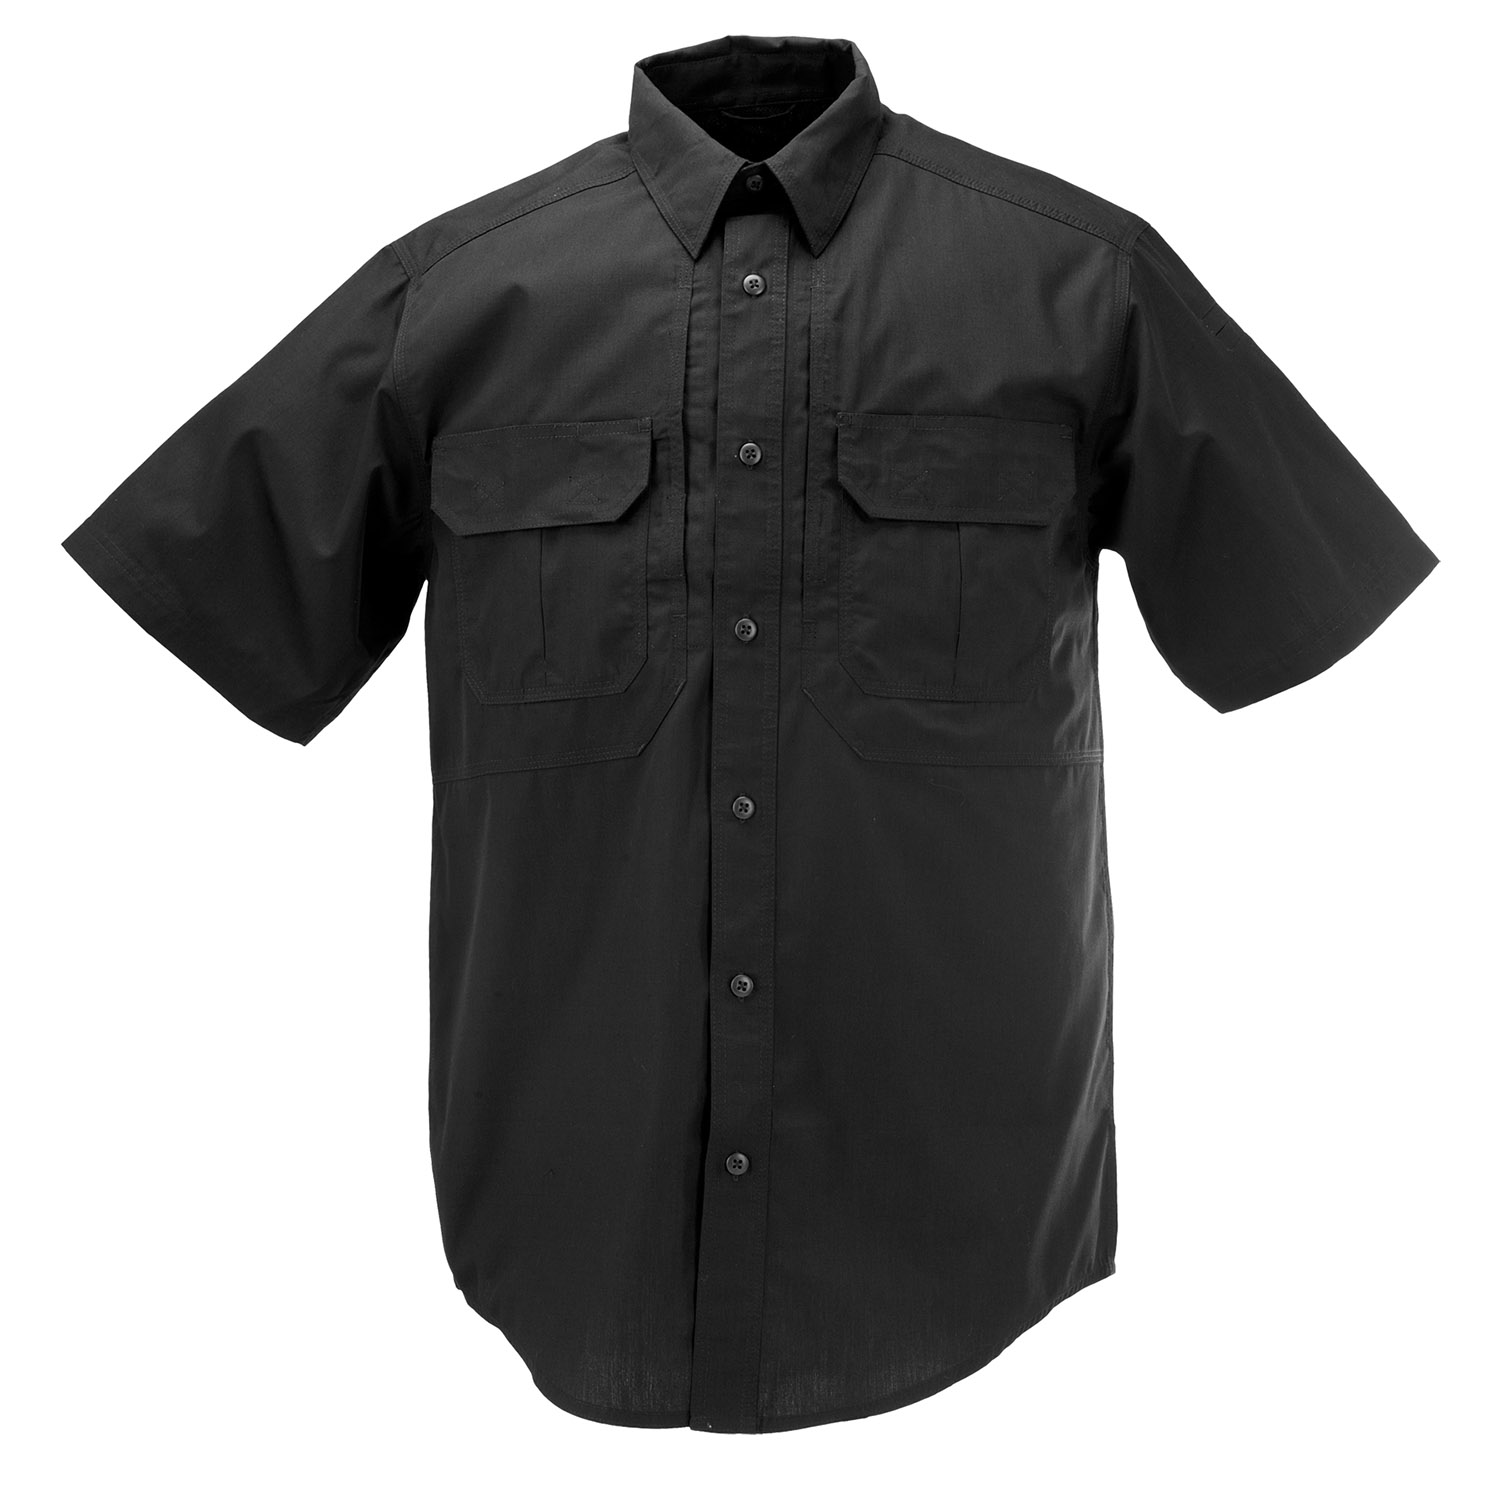 Tactical Taclite Pro Short Sleeve Shirt At Galls